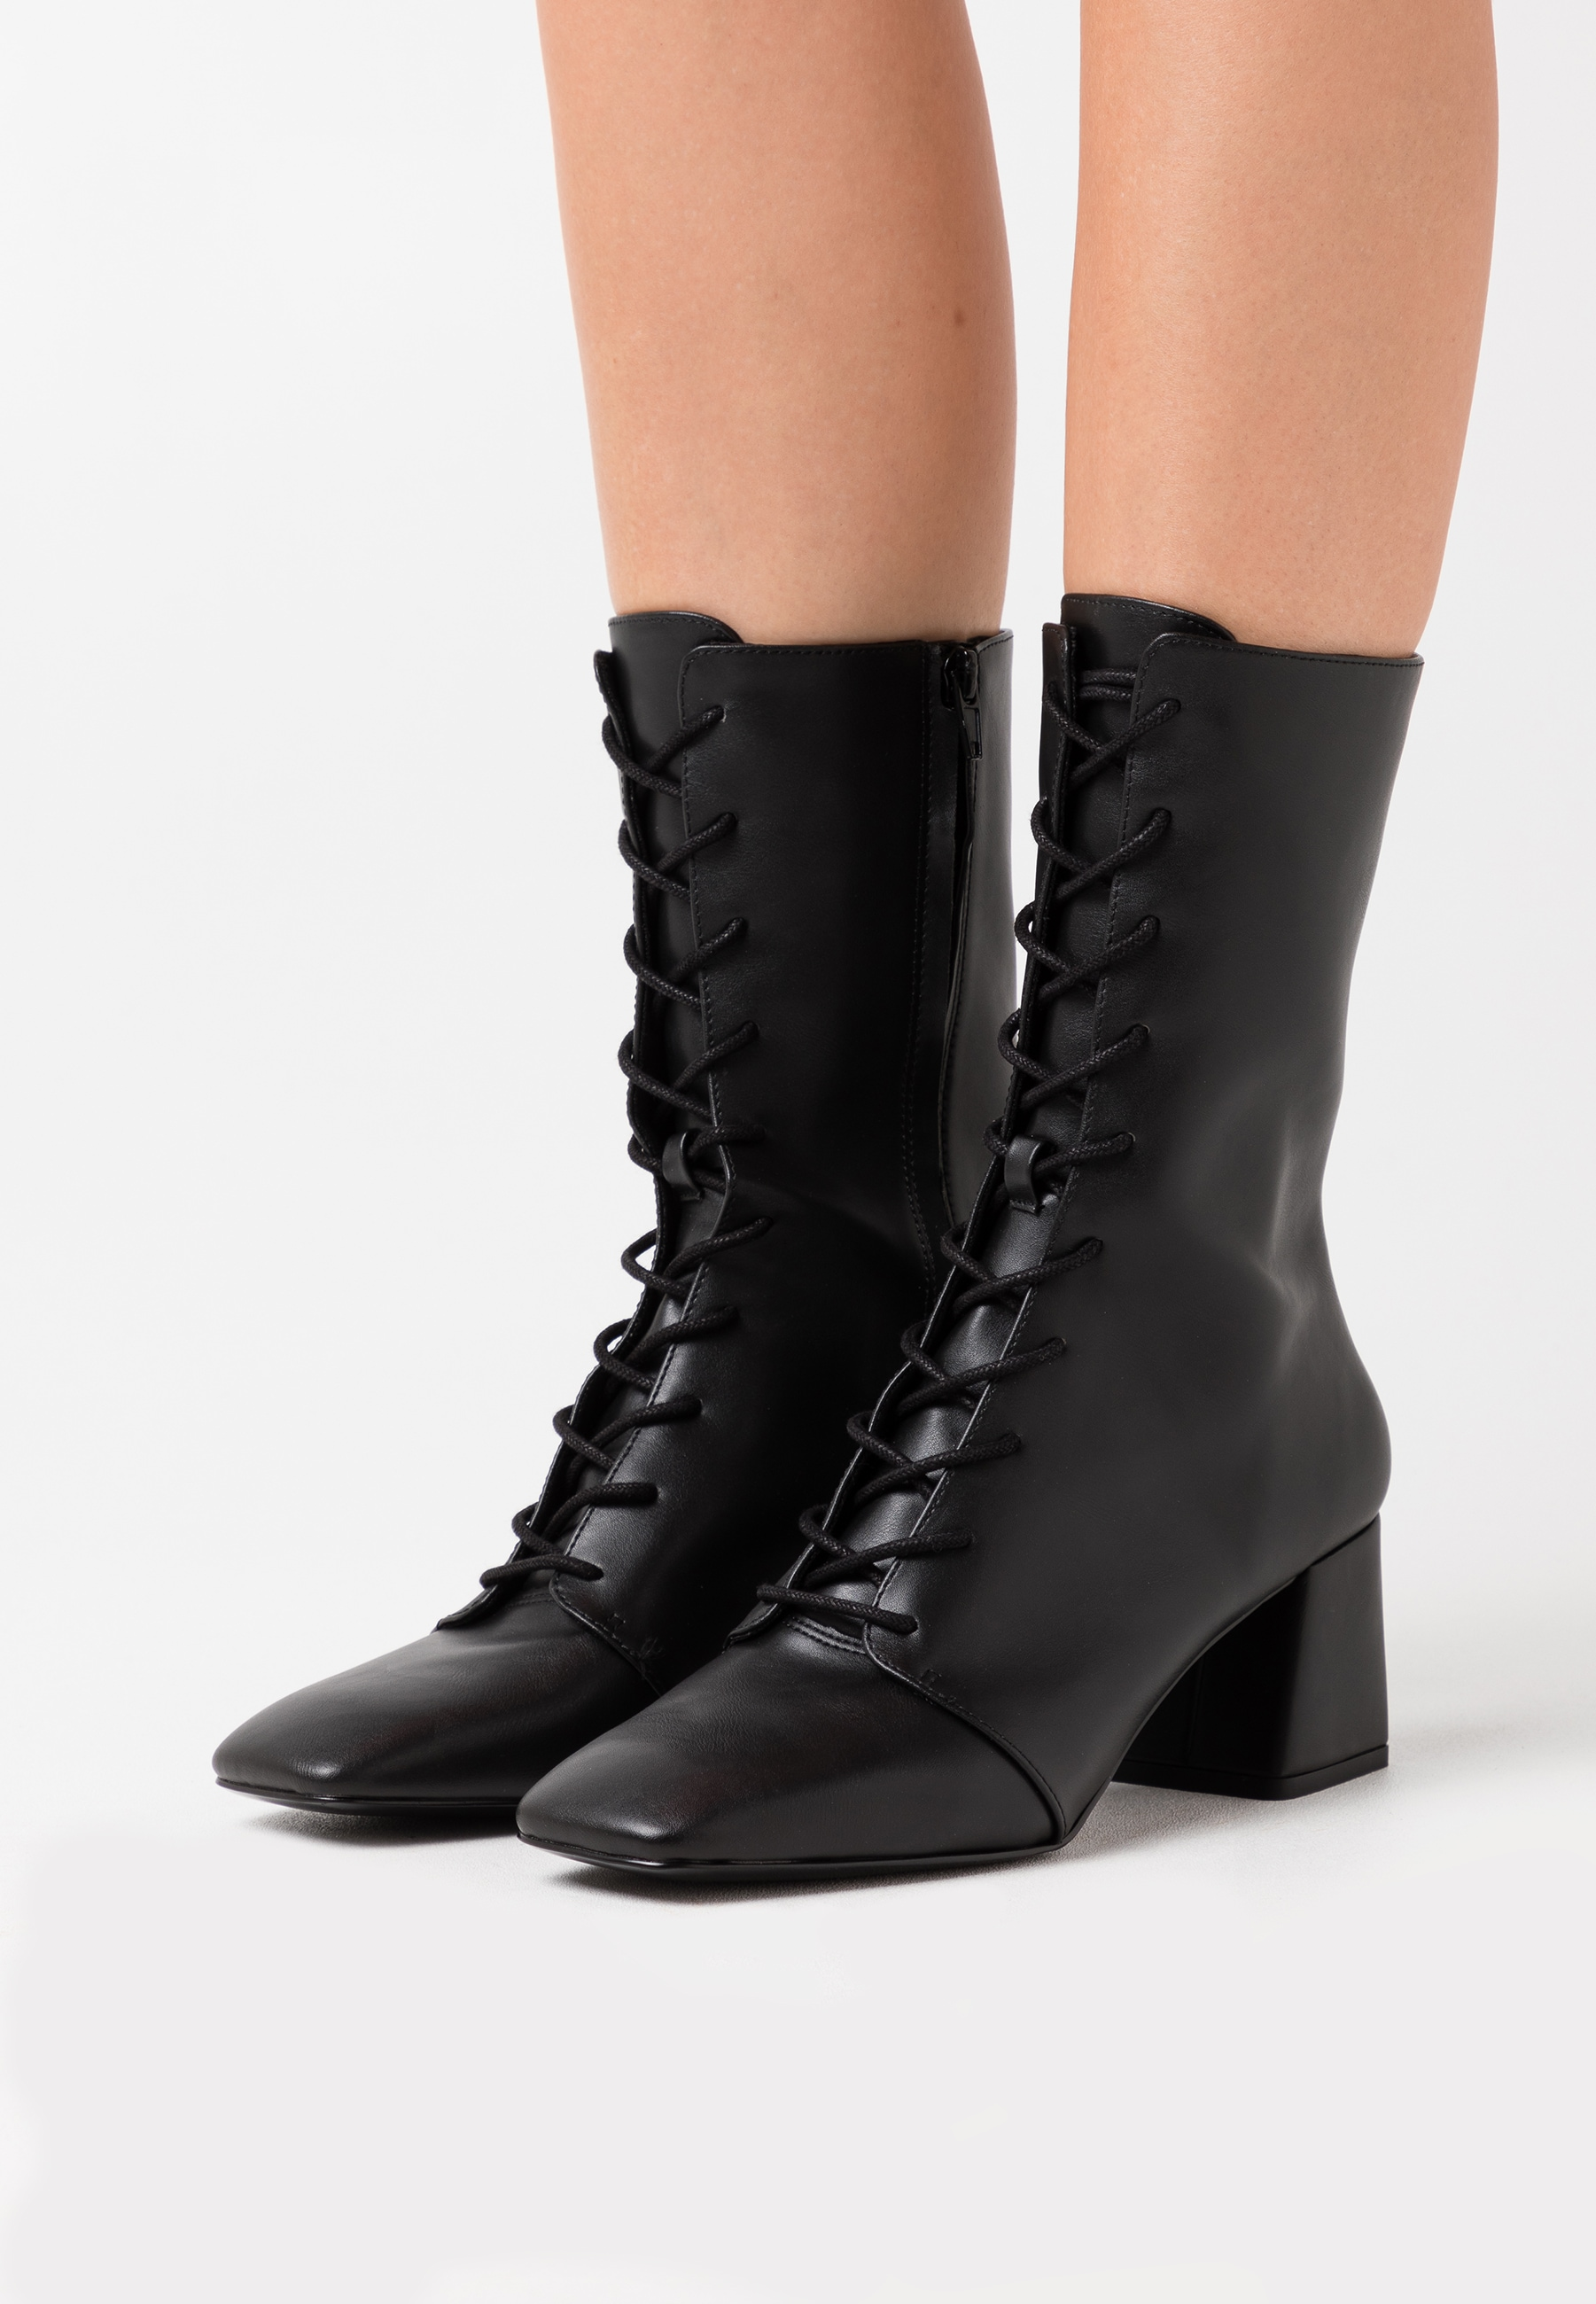 VEGAN THELMA BOOT - Lace-up boots by